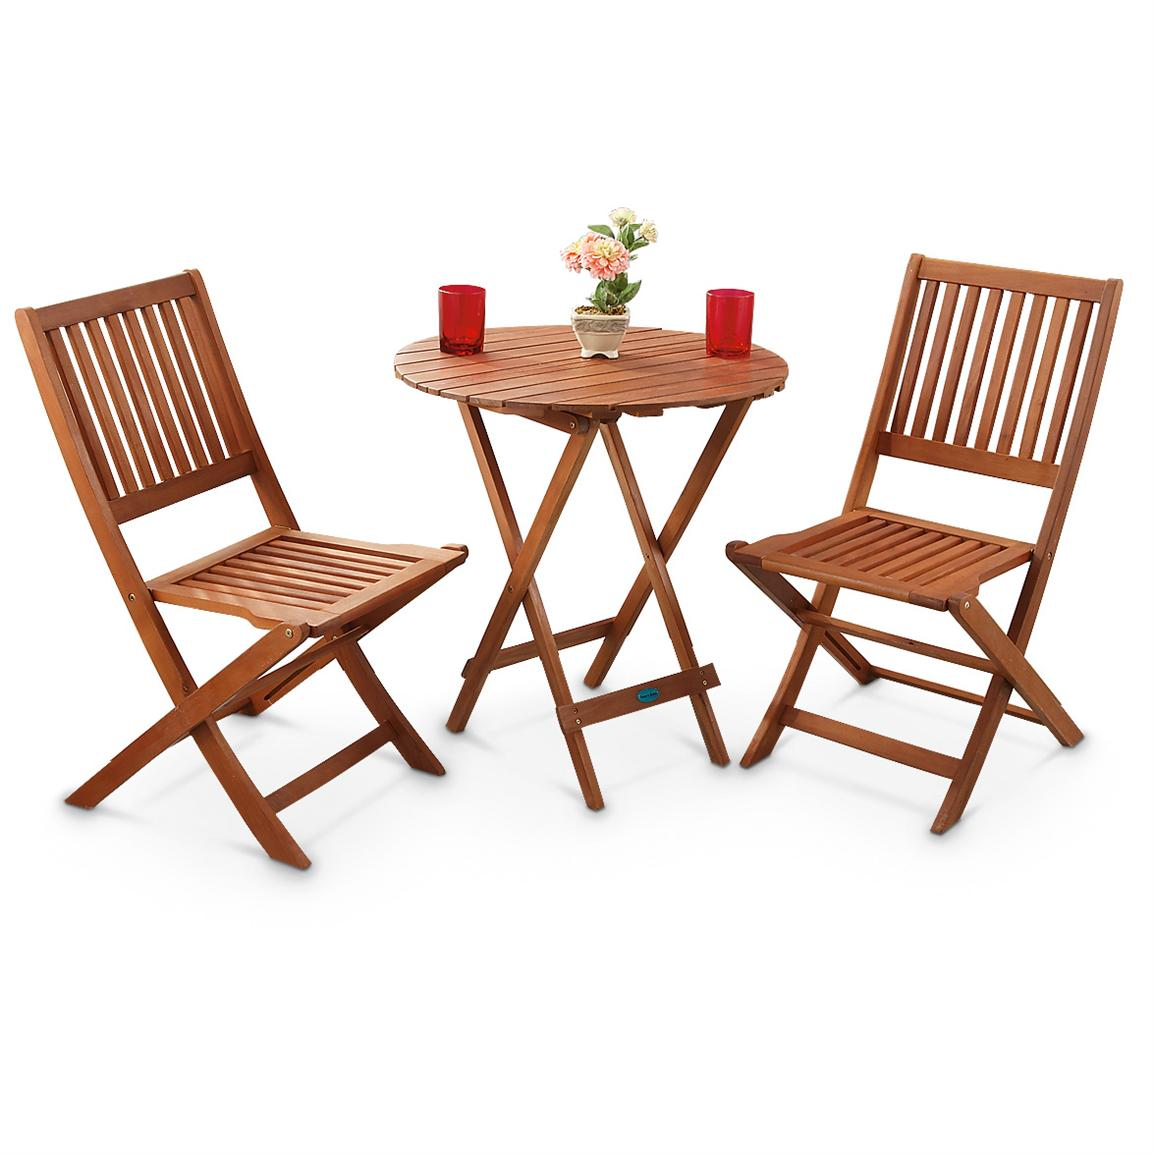 Outside Table And Chairs 3 Pc Outdoor Folding Table And Chairs Set 283209